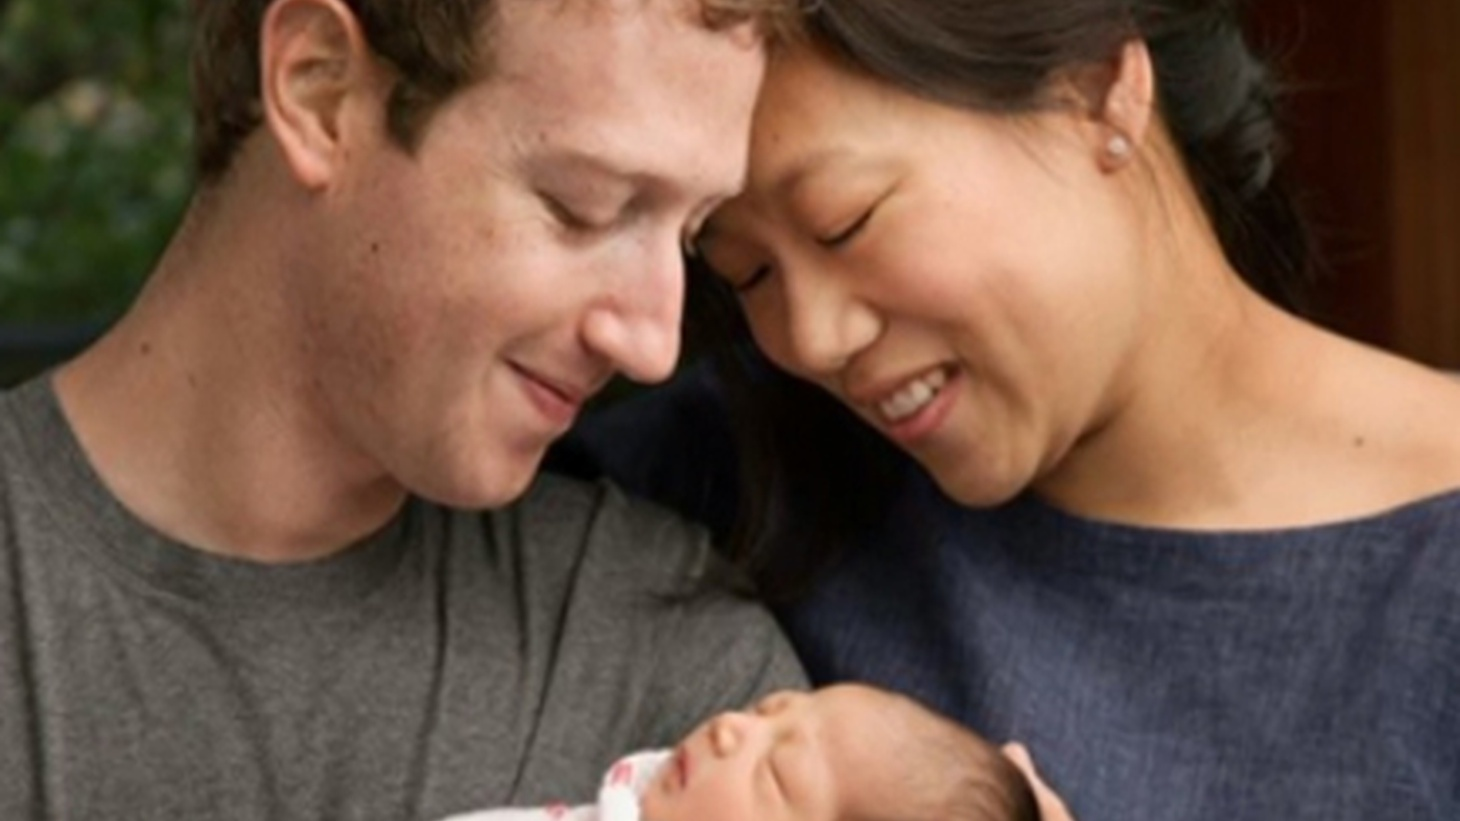 The idea that new fathers should be given time off to bond with their babies has been gaining steam with US employers. Now Facebook founder Mark Zukerberg may be giving it new momentum.